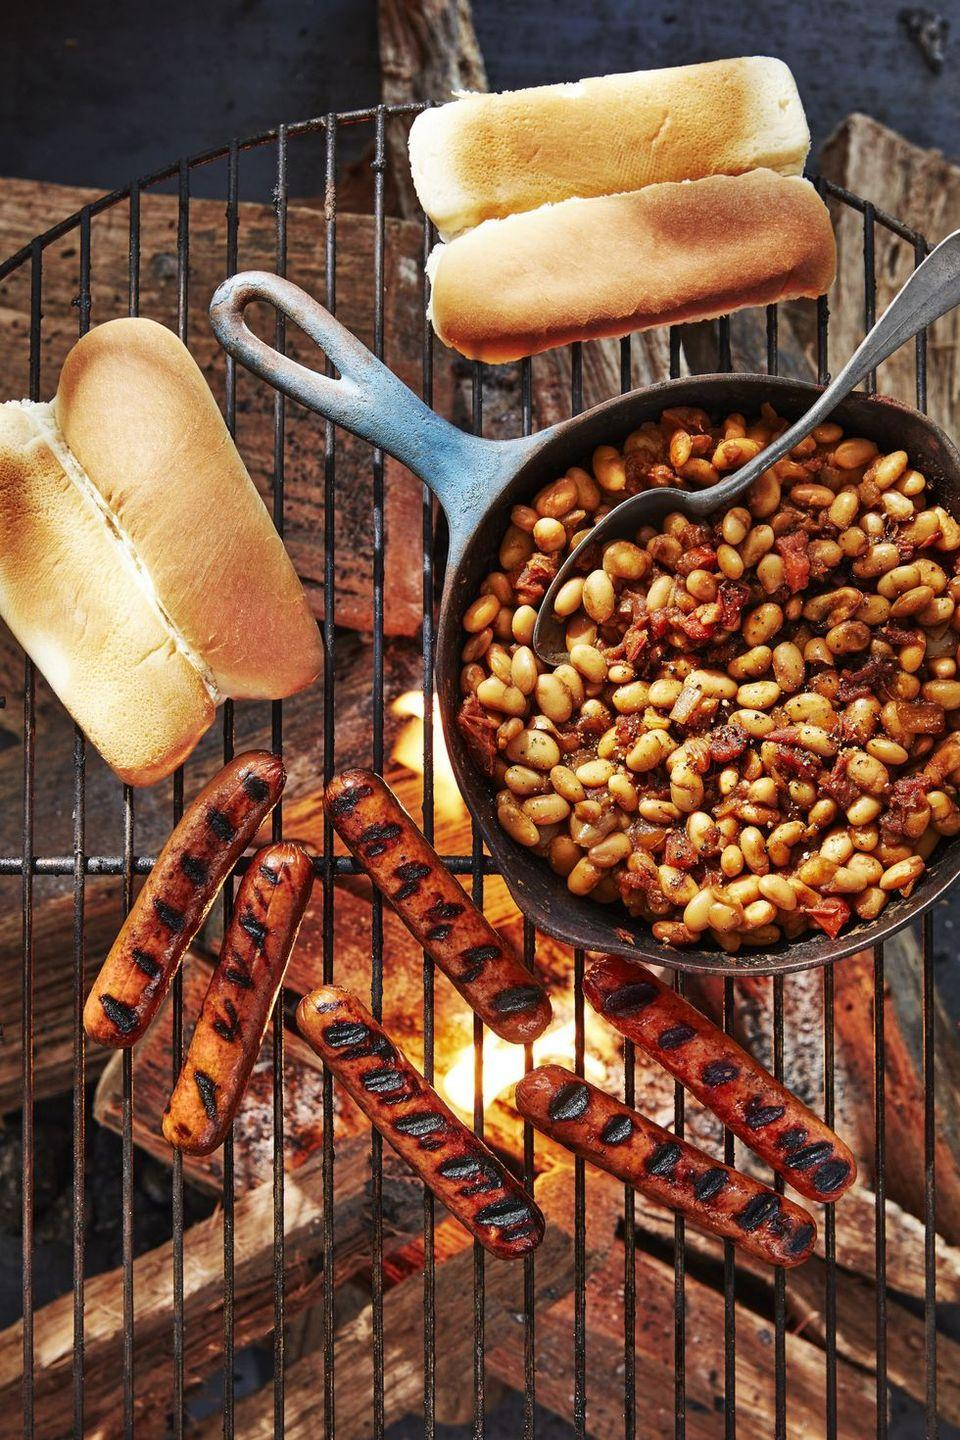 """<p>Quick cooking classic baked beans pair perfectly with grilled hot dogs and buns. This is basically summer on a grill!</p><p><strong><a href=""""https://www.countryliving.com/food-drinks/a28189870/hot-dogs-with-quick-cast-iron-beans-recipe/"""" rel=""""nofollow noopener"""" target=""""_blank"""" data-ylk=""""slk:Get the recipe"""" class=""""link rapid-noclick-resp"""">Get the recipe</a>.</strong><br></p>"""